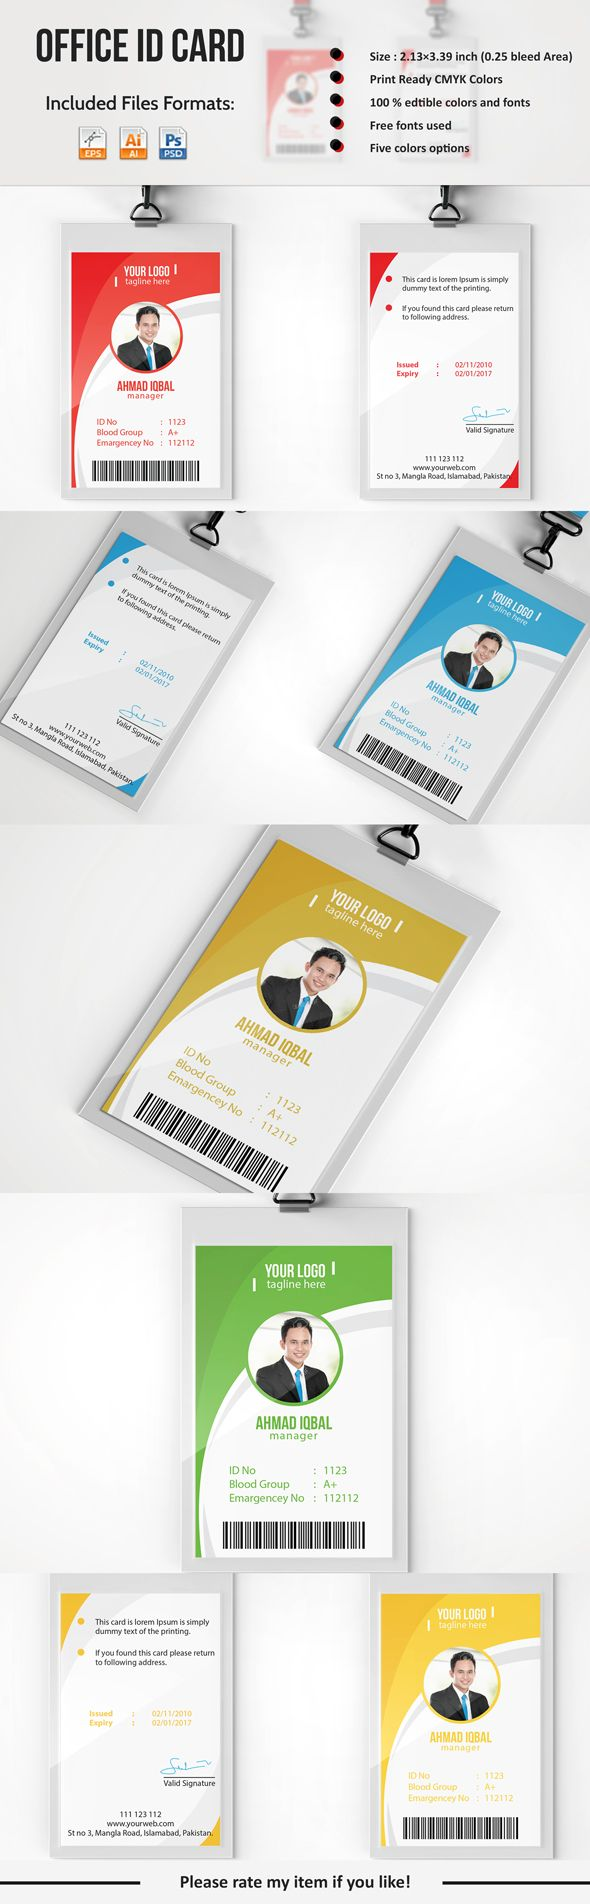 72 best Name Tag images on Pinterest | Badges, Business cards and ...